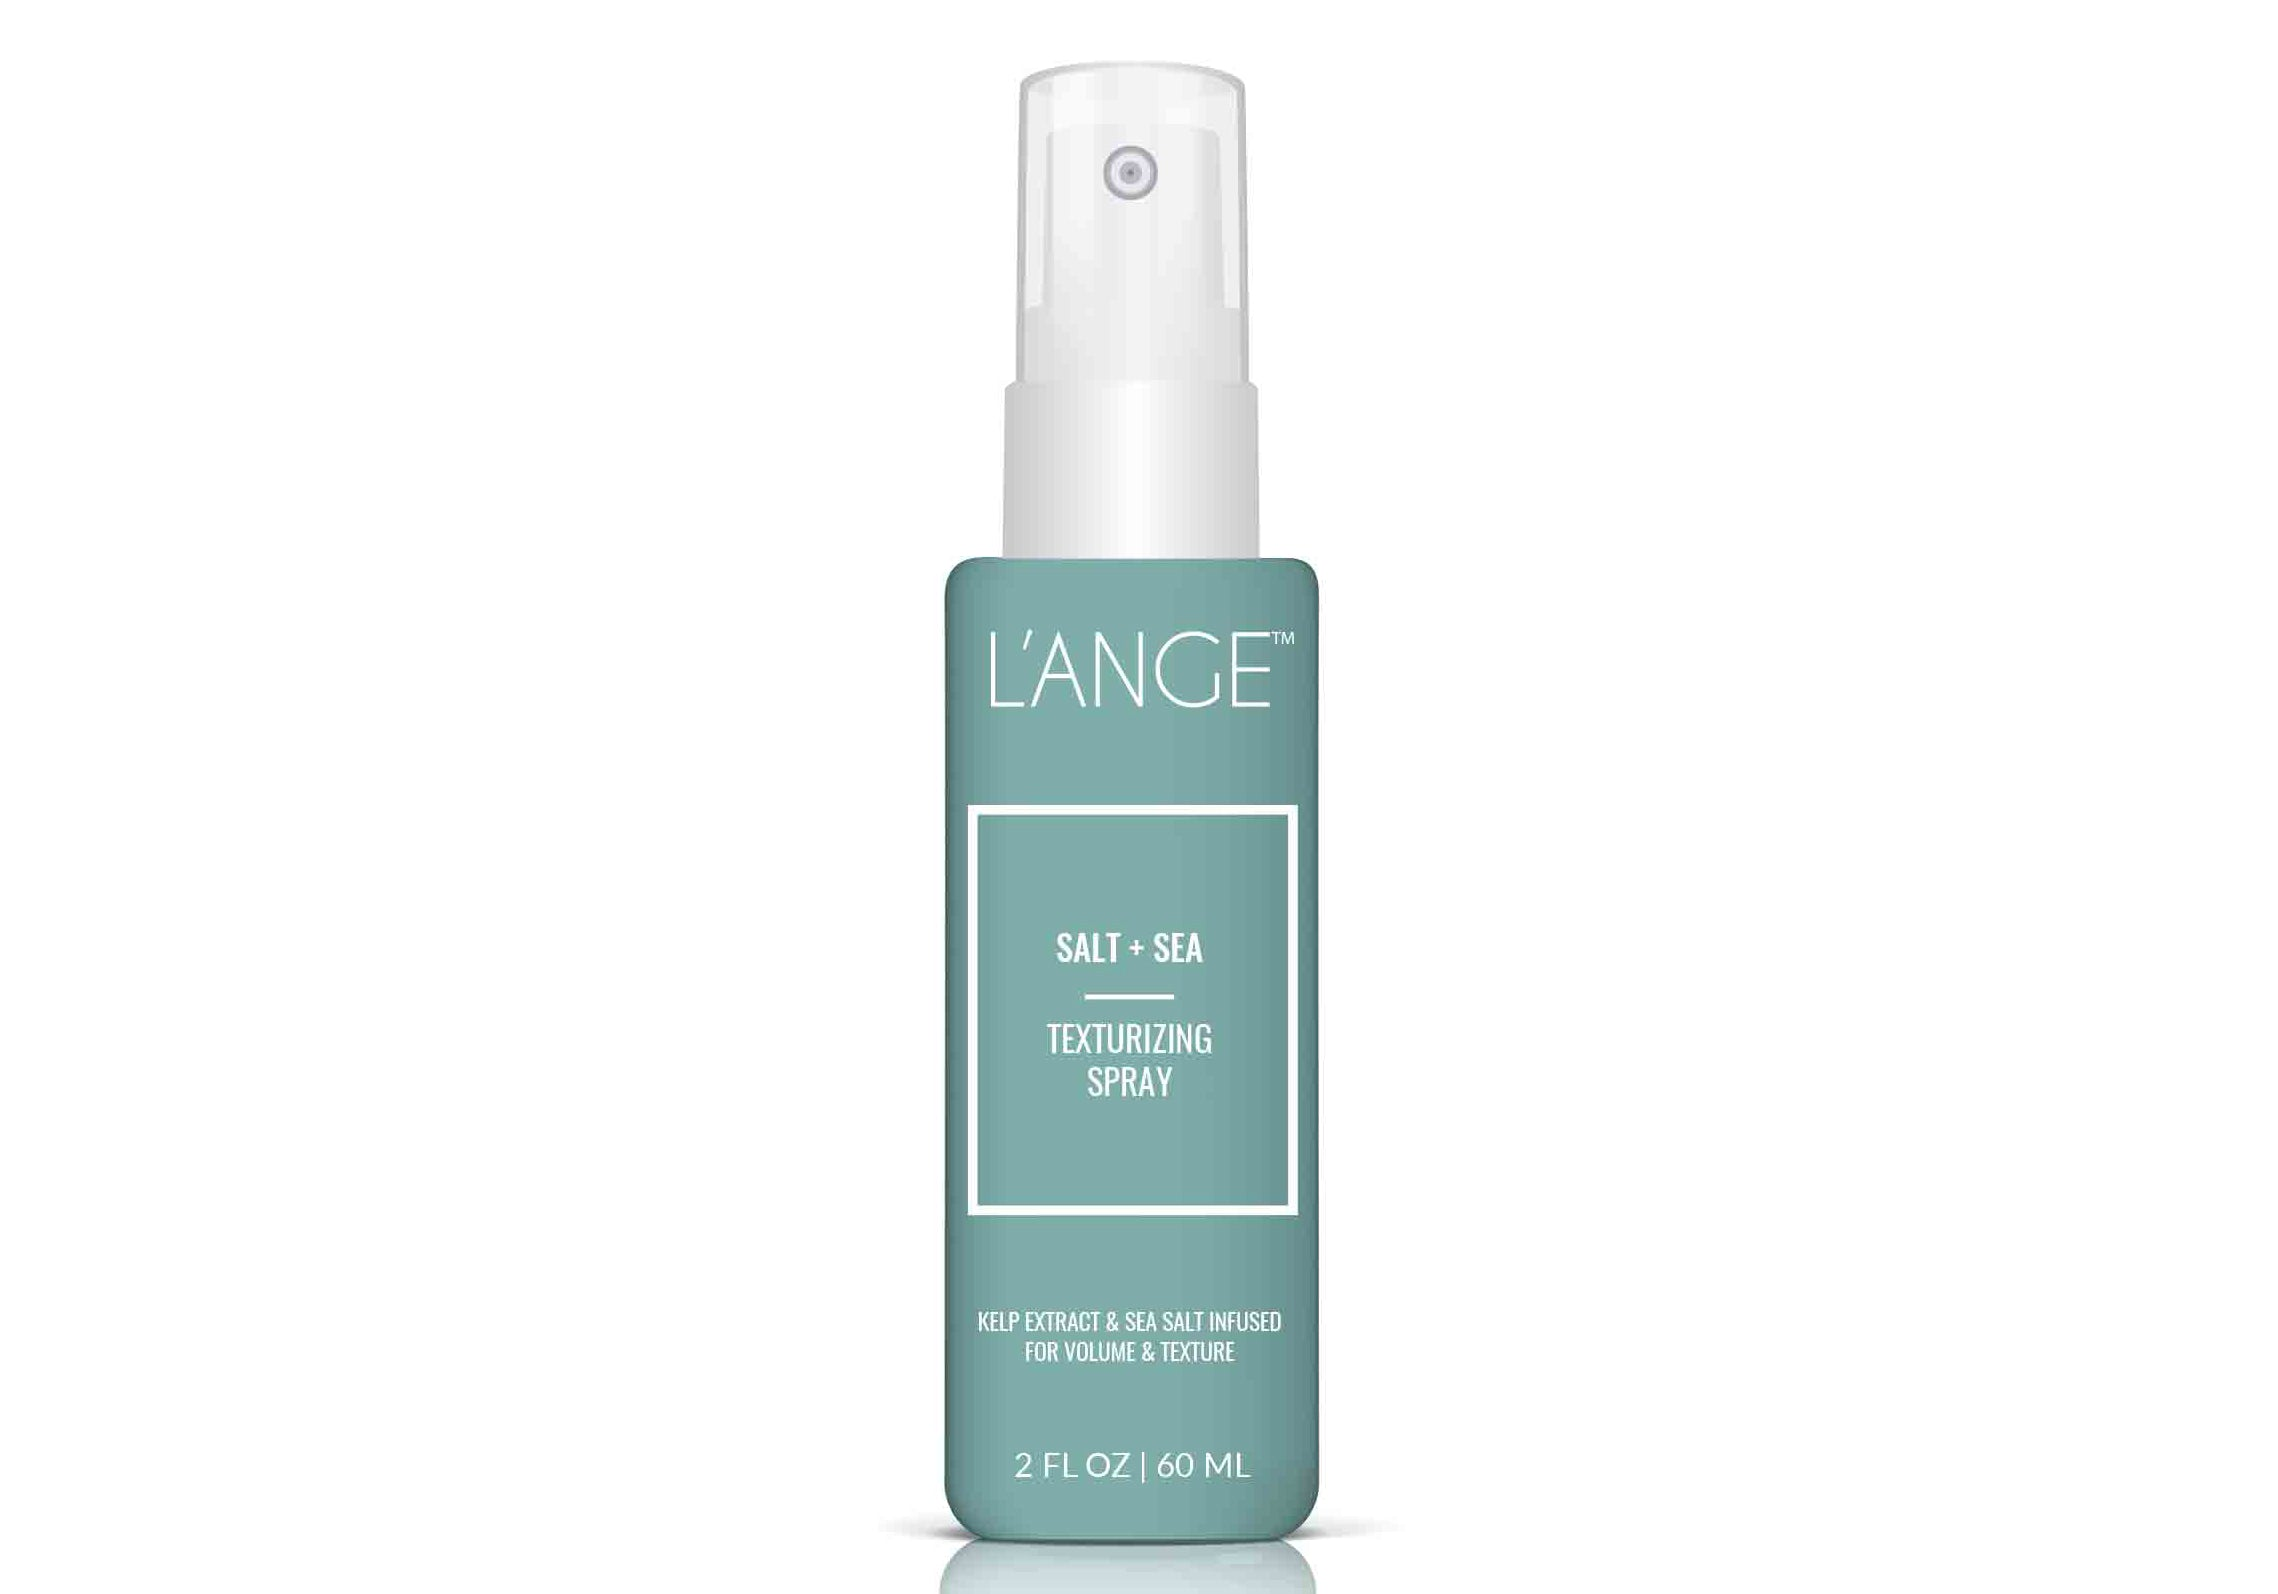 L'ange Travel Size Salt + Sea Texturizing Spray